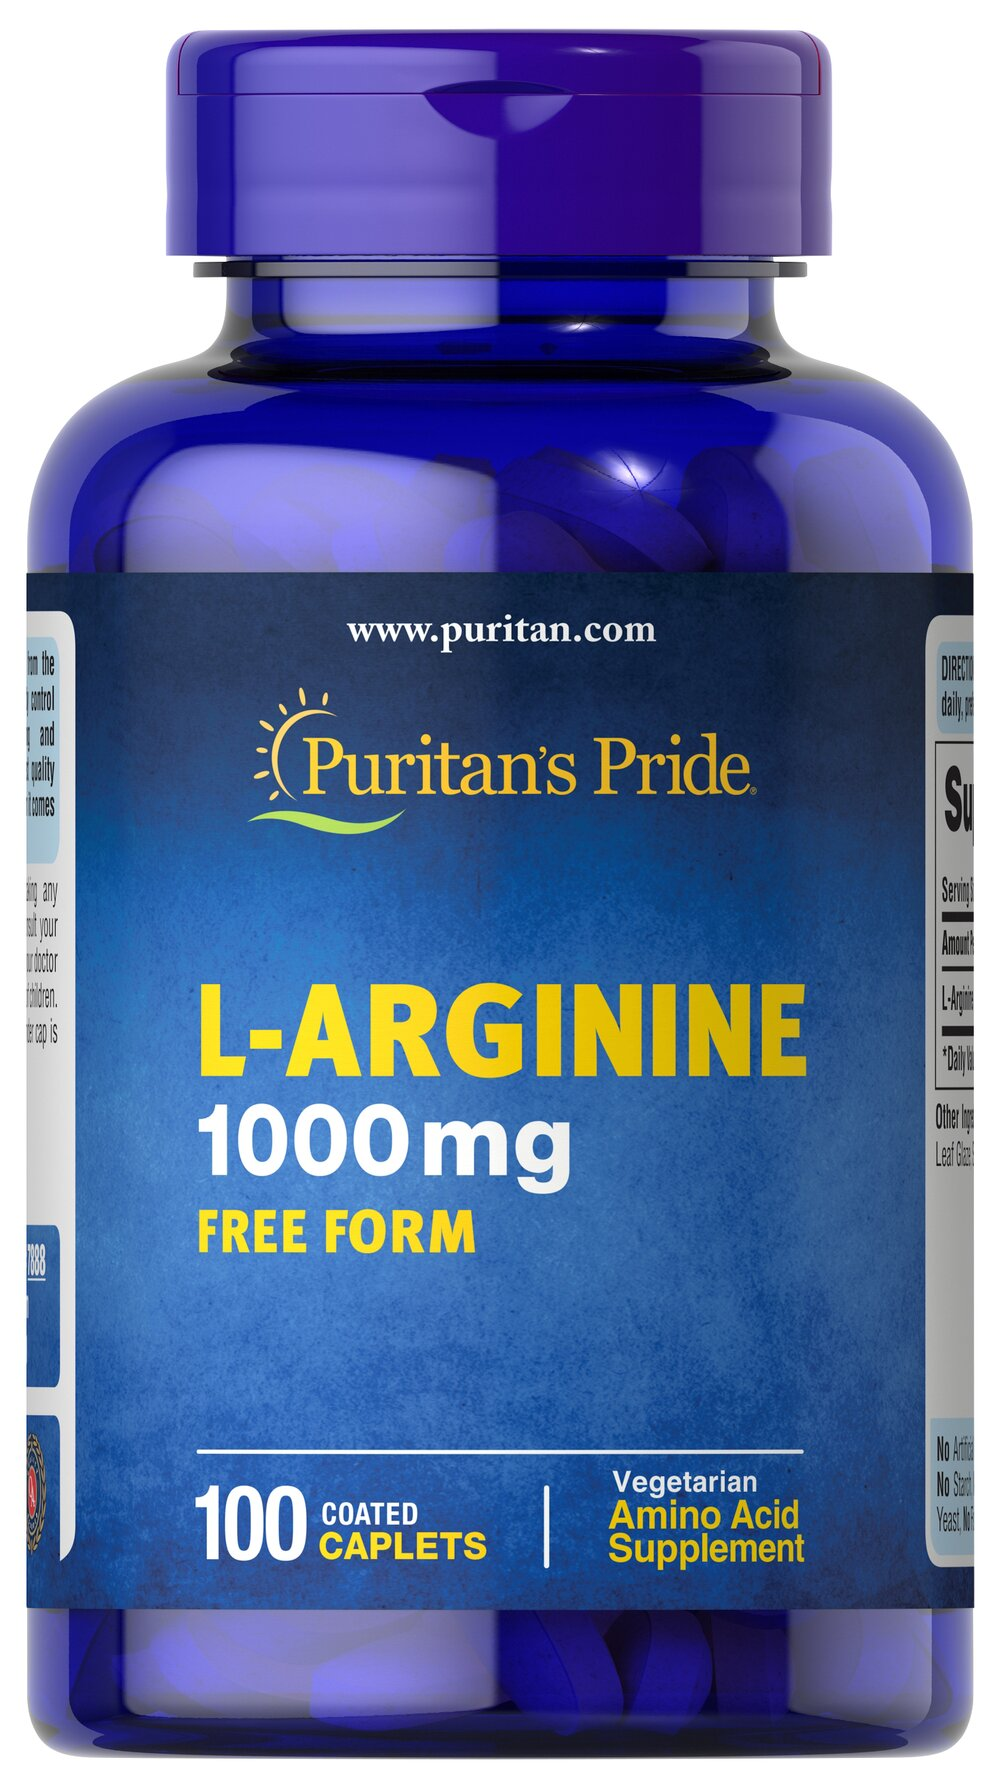 L-Arginine 1000 mg <p>Arginine is one of 20 amino acids, the building blocks of protein.** Arginine can  serve as a source of energy, and is involved in various pathways throughout the body.** Arginine supports the effect of exercise and is one of the most important amino acids involved in immune function.** Adults can take one caplet daily. </p> 100 Caplets 1000 mg $23.99